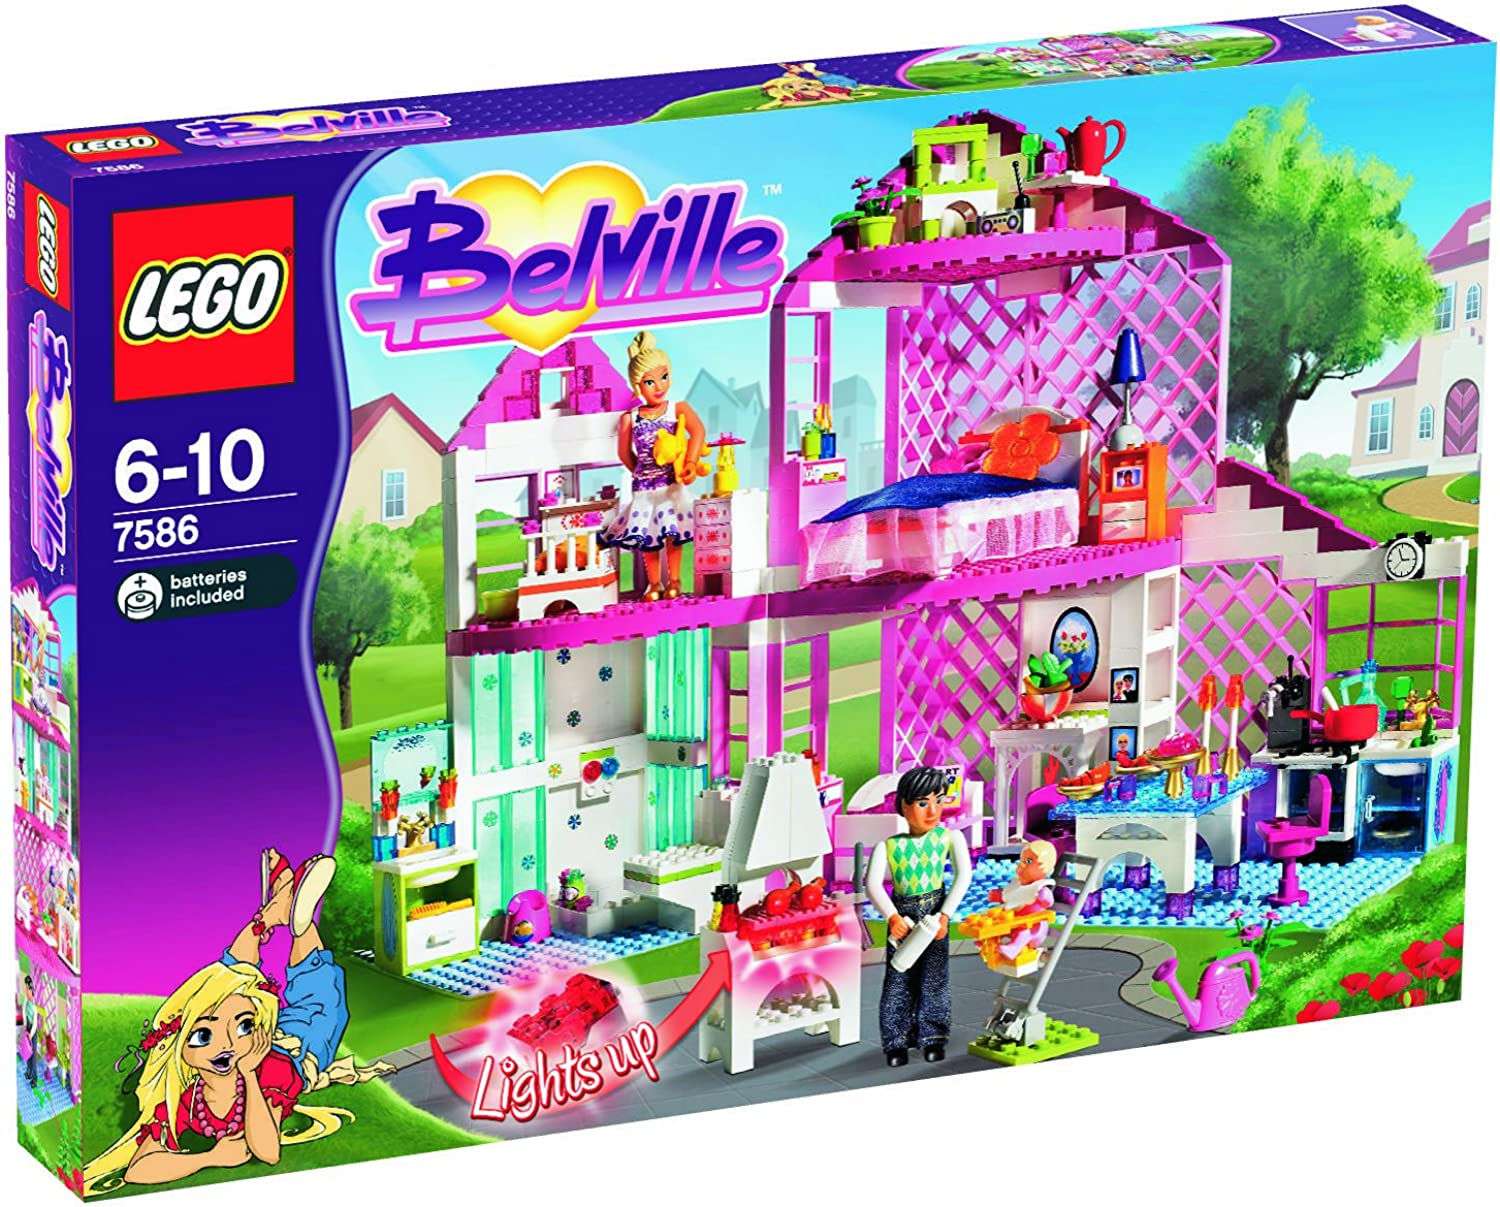 LEGO Belville 7586  Sunshine Home